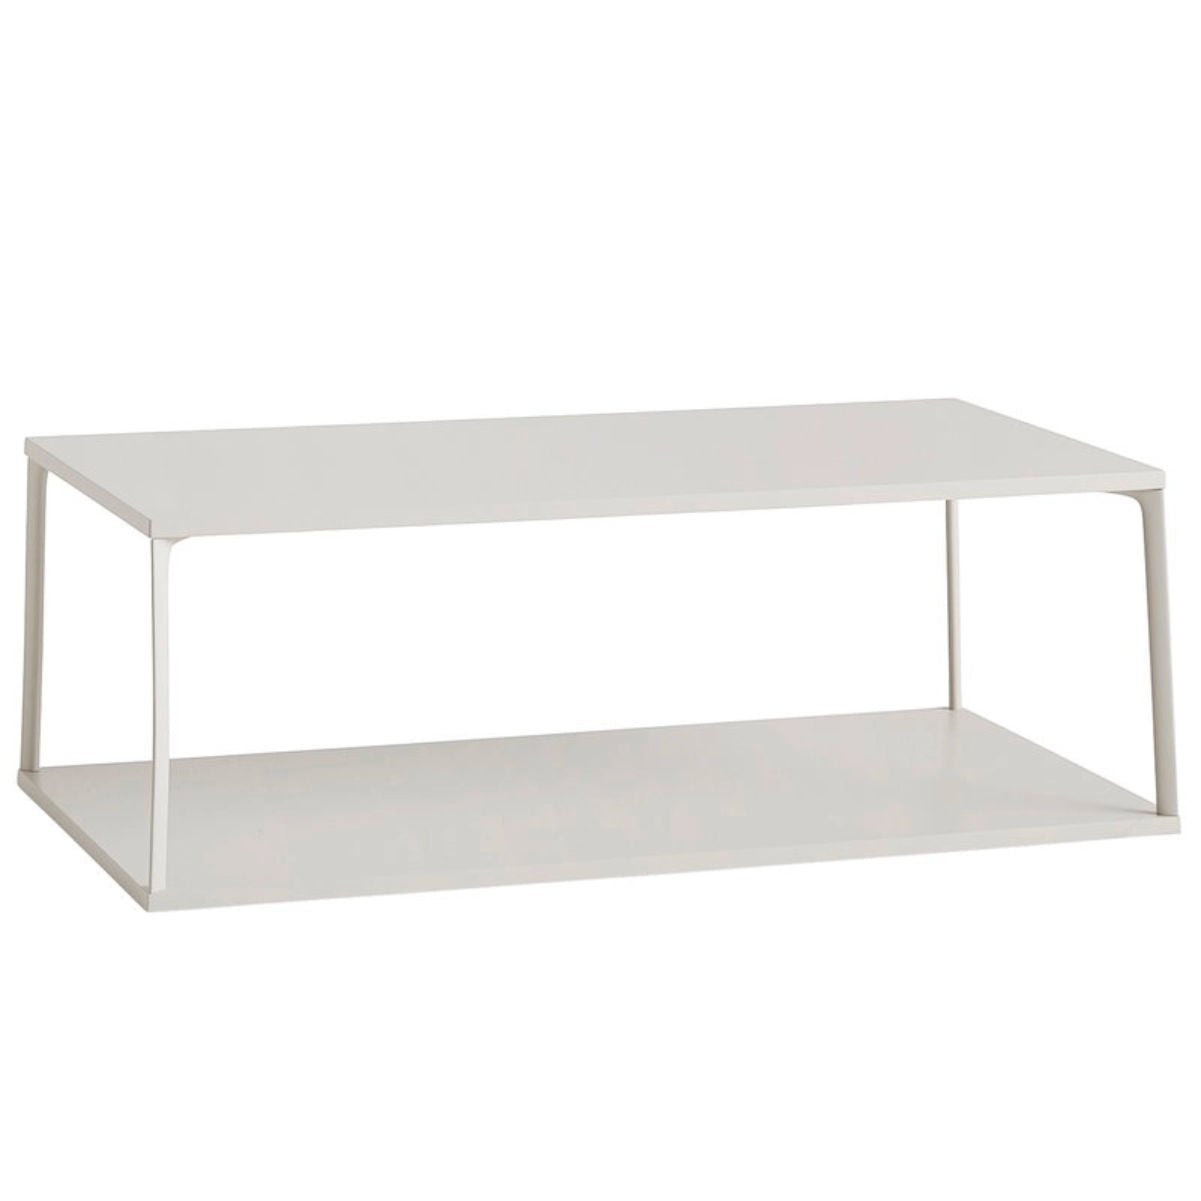 Hay Eiffel coffee table, rectangle